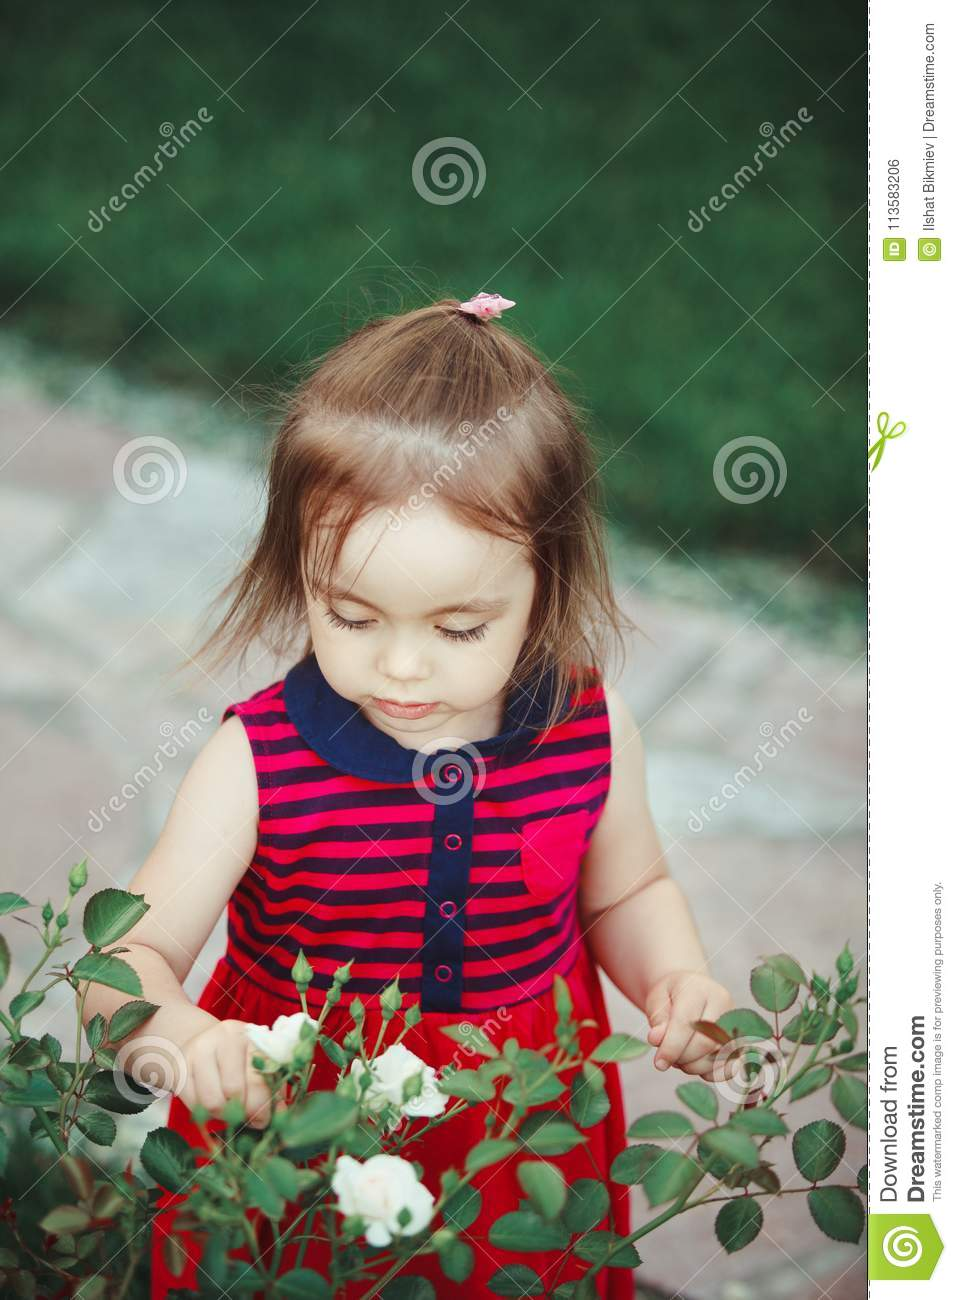 ed4156461 Cute baby looks at the white spray roses. adorable little girl in red dress.